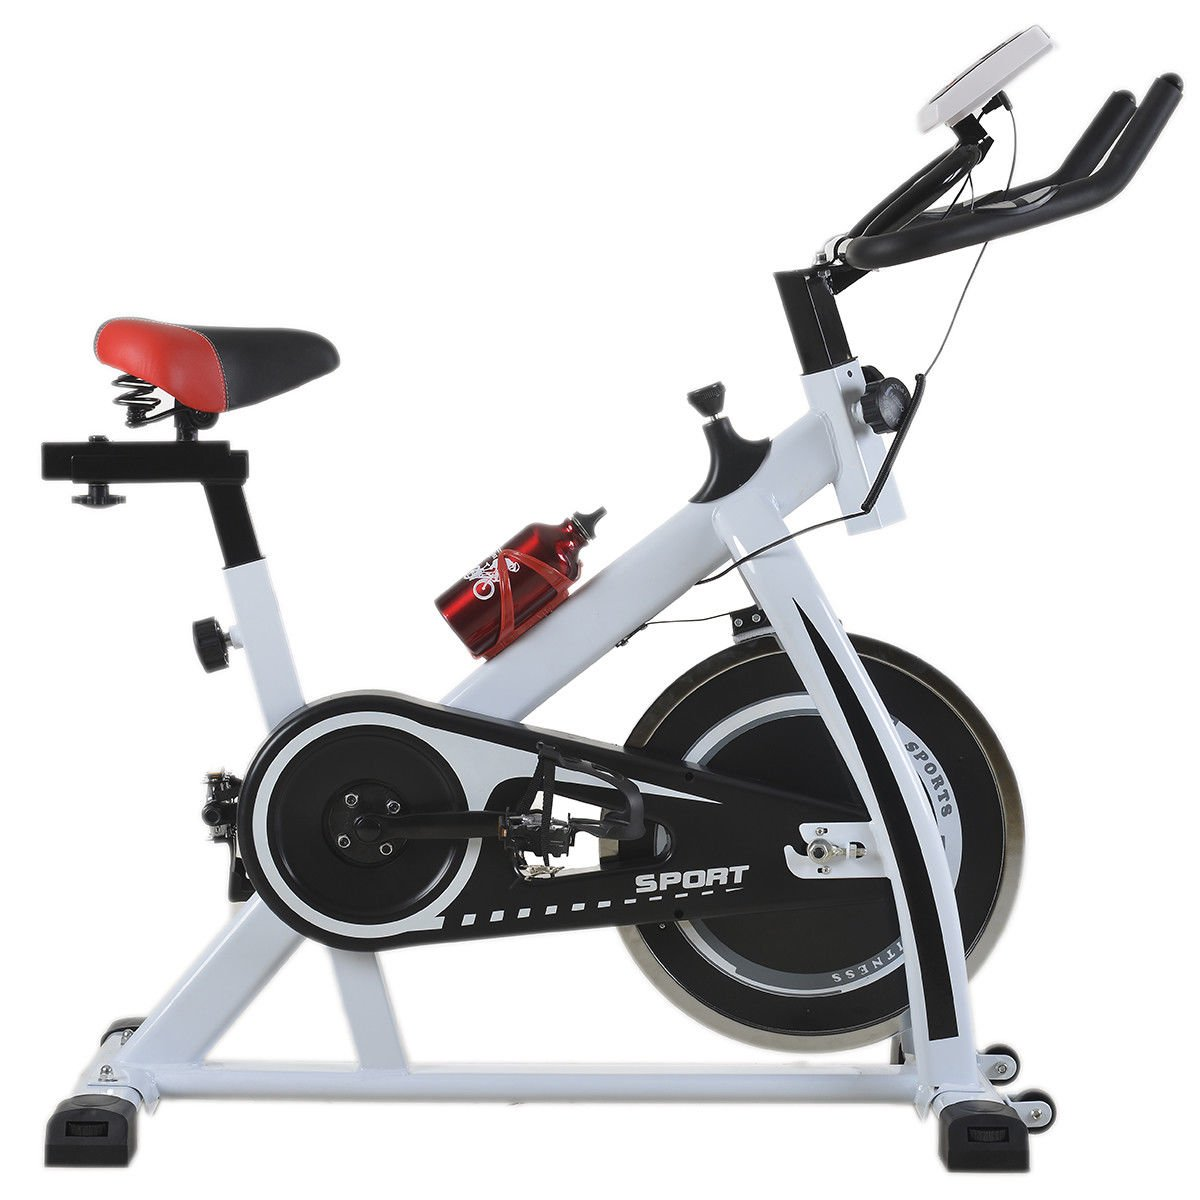 Cycling Trainer Fitness Exercise Bike Stationary Cardio Home Indoor Best Massage by BMS